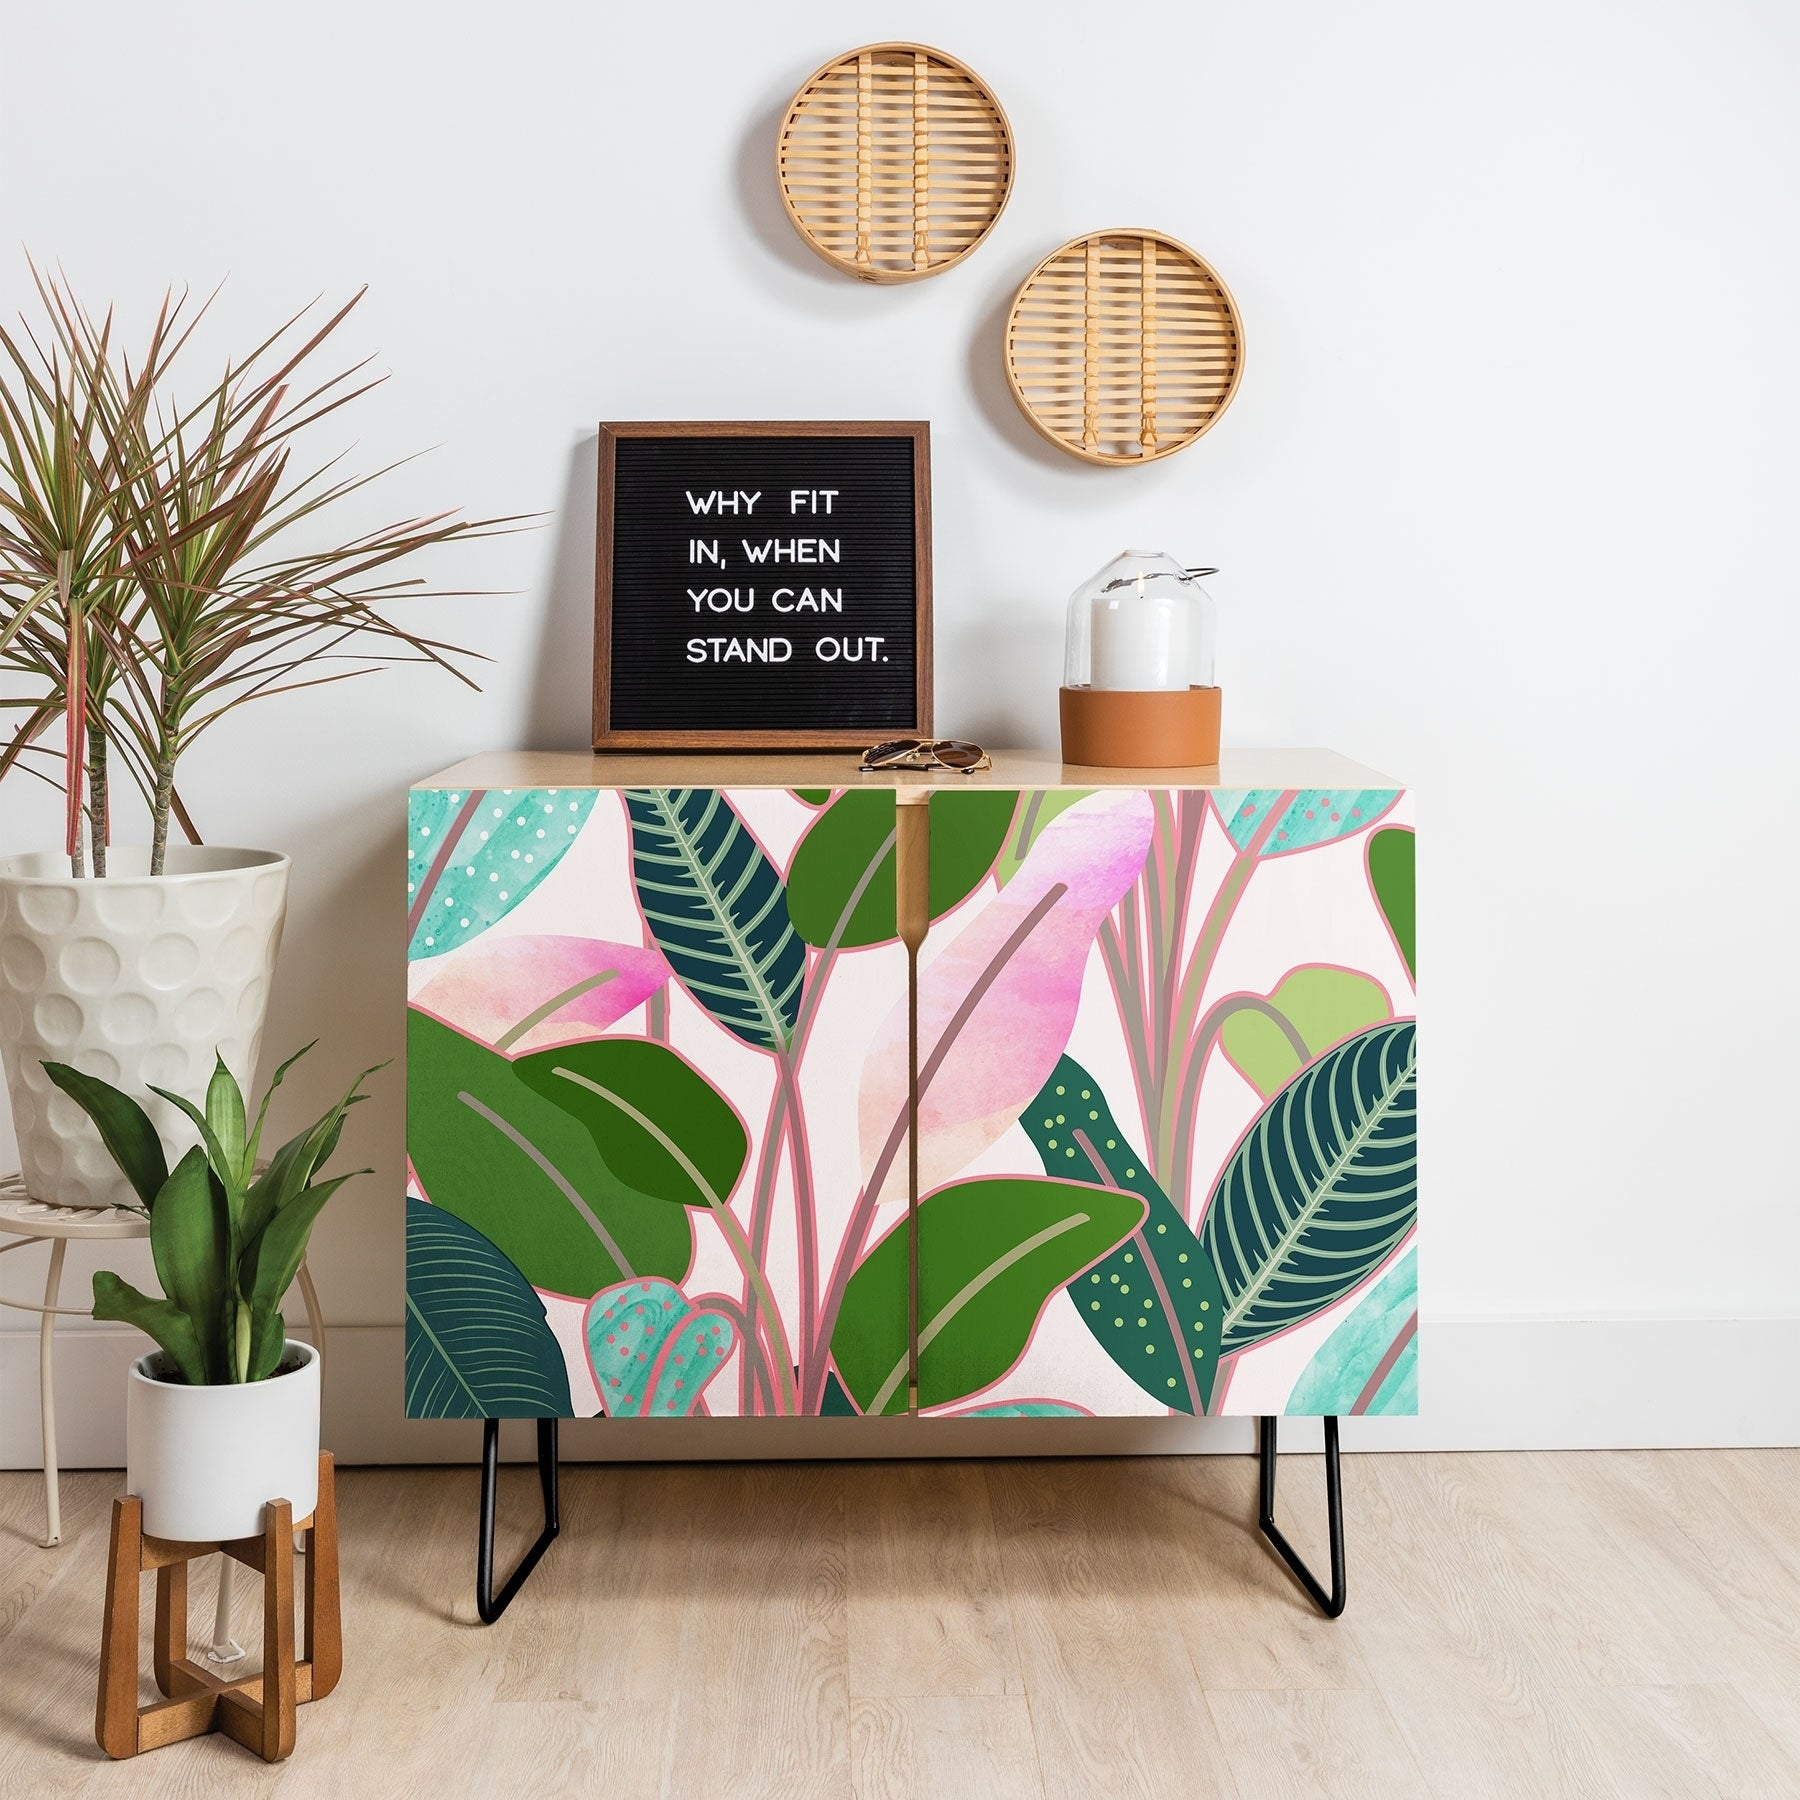 Deny Designs Colorful Leaves Credenza (Birch Or Walnut, 2 Leg Options) Throughout Colorful Leaves Credenzas (Photo 3 of 30)